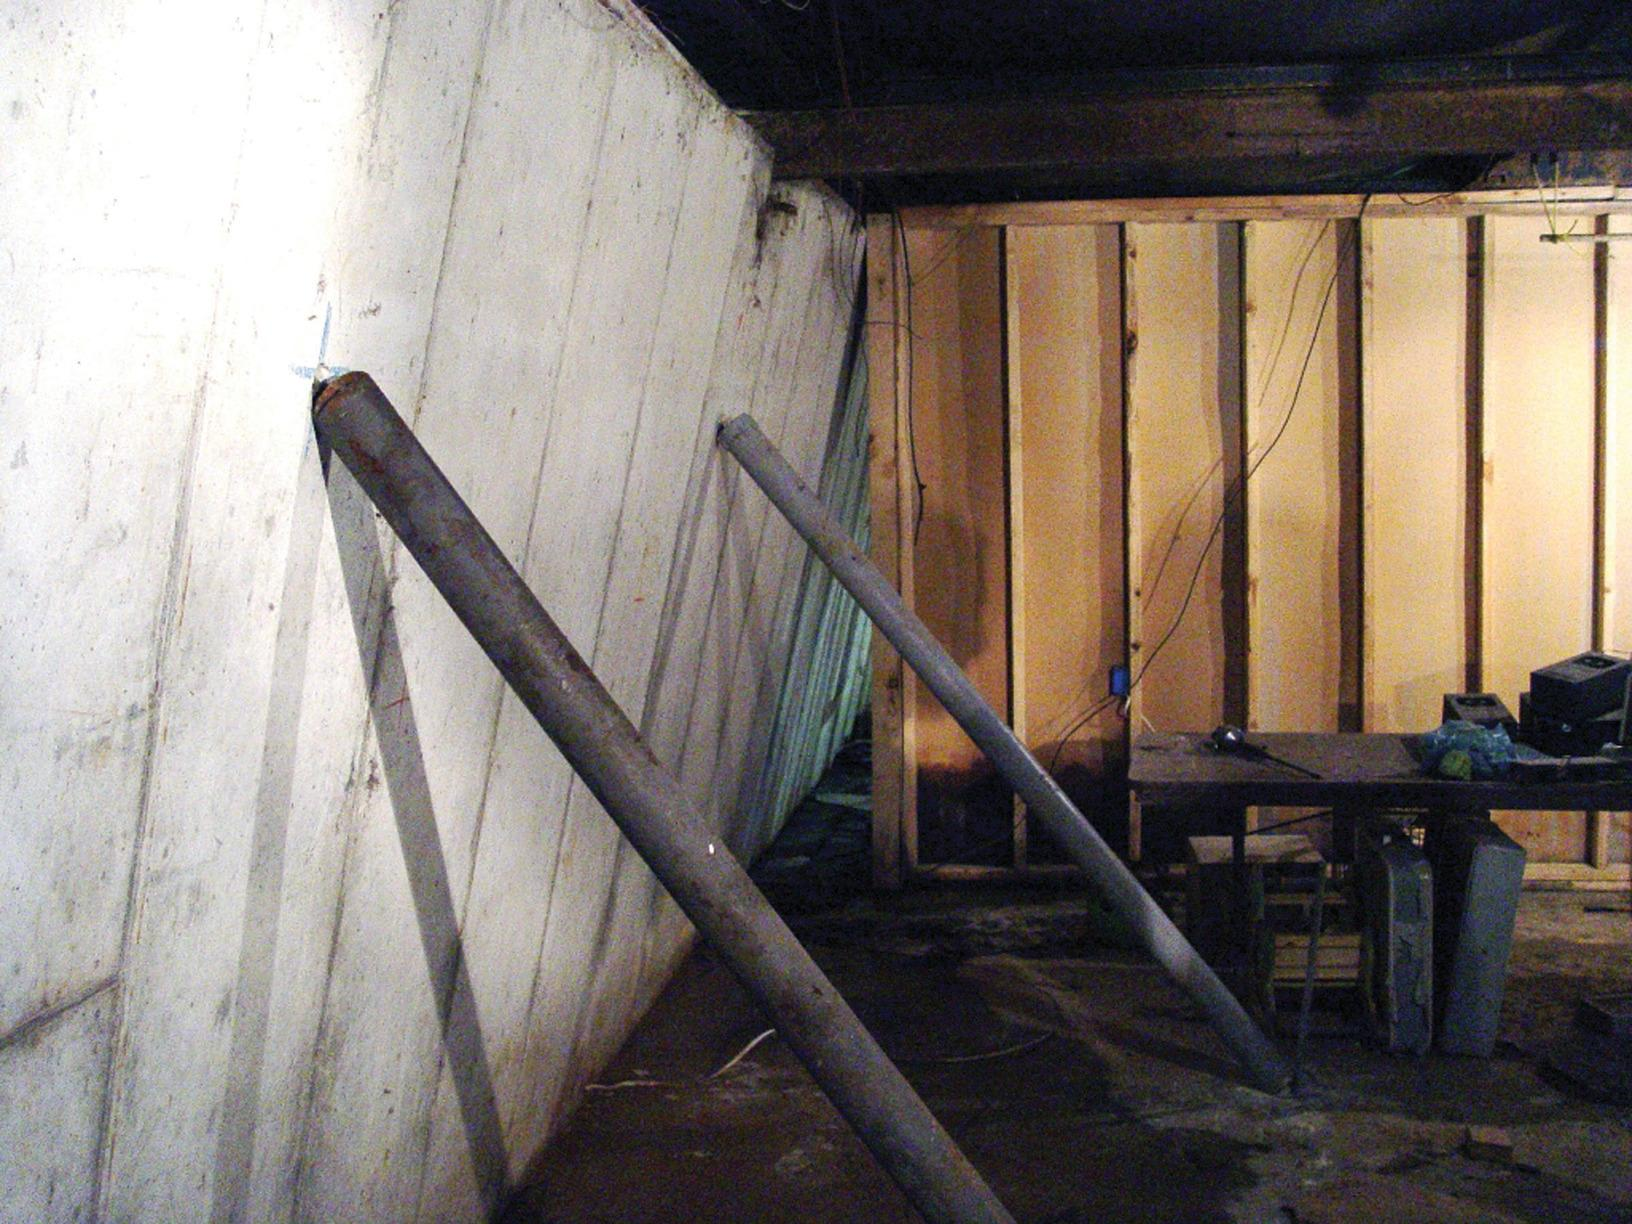 Foundation Repair Solutions - Wall Anchors